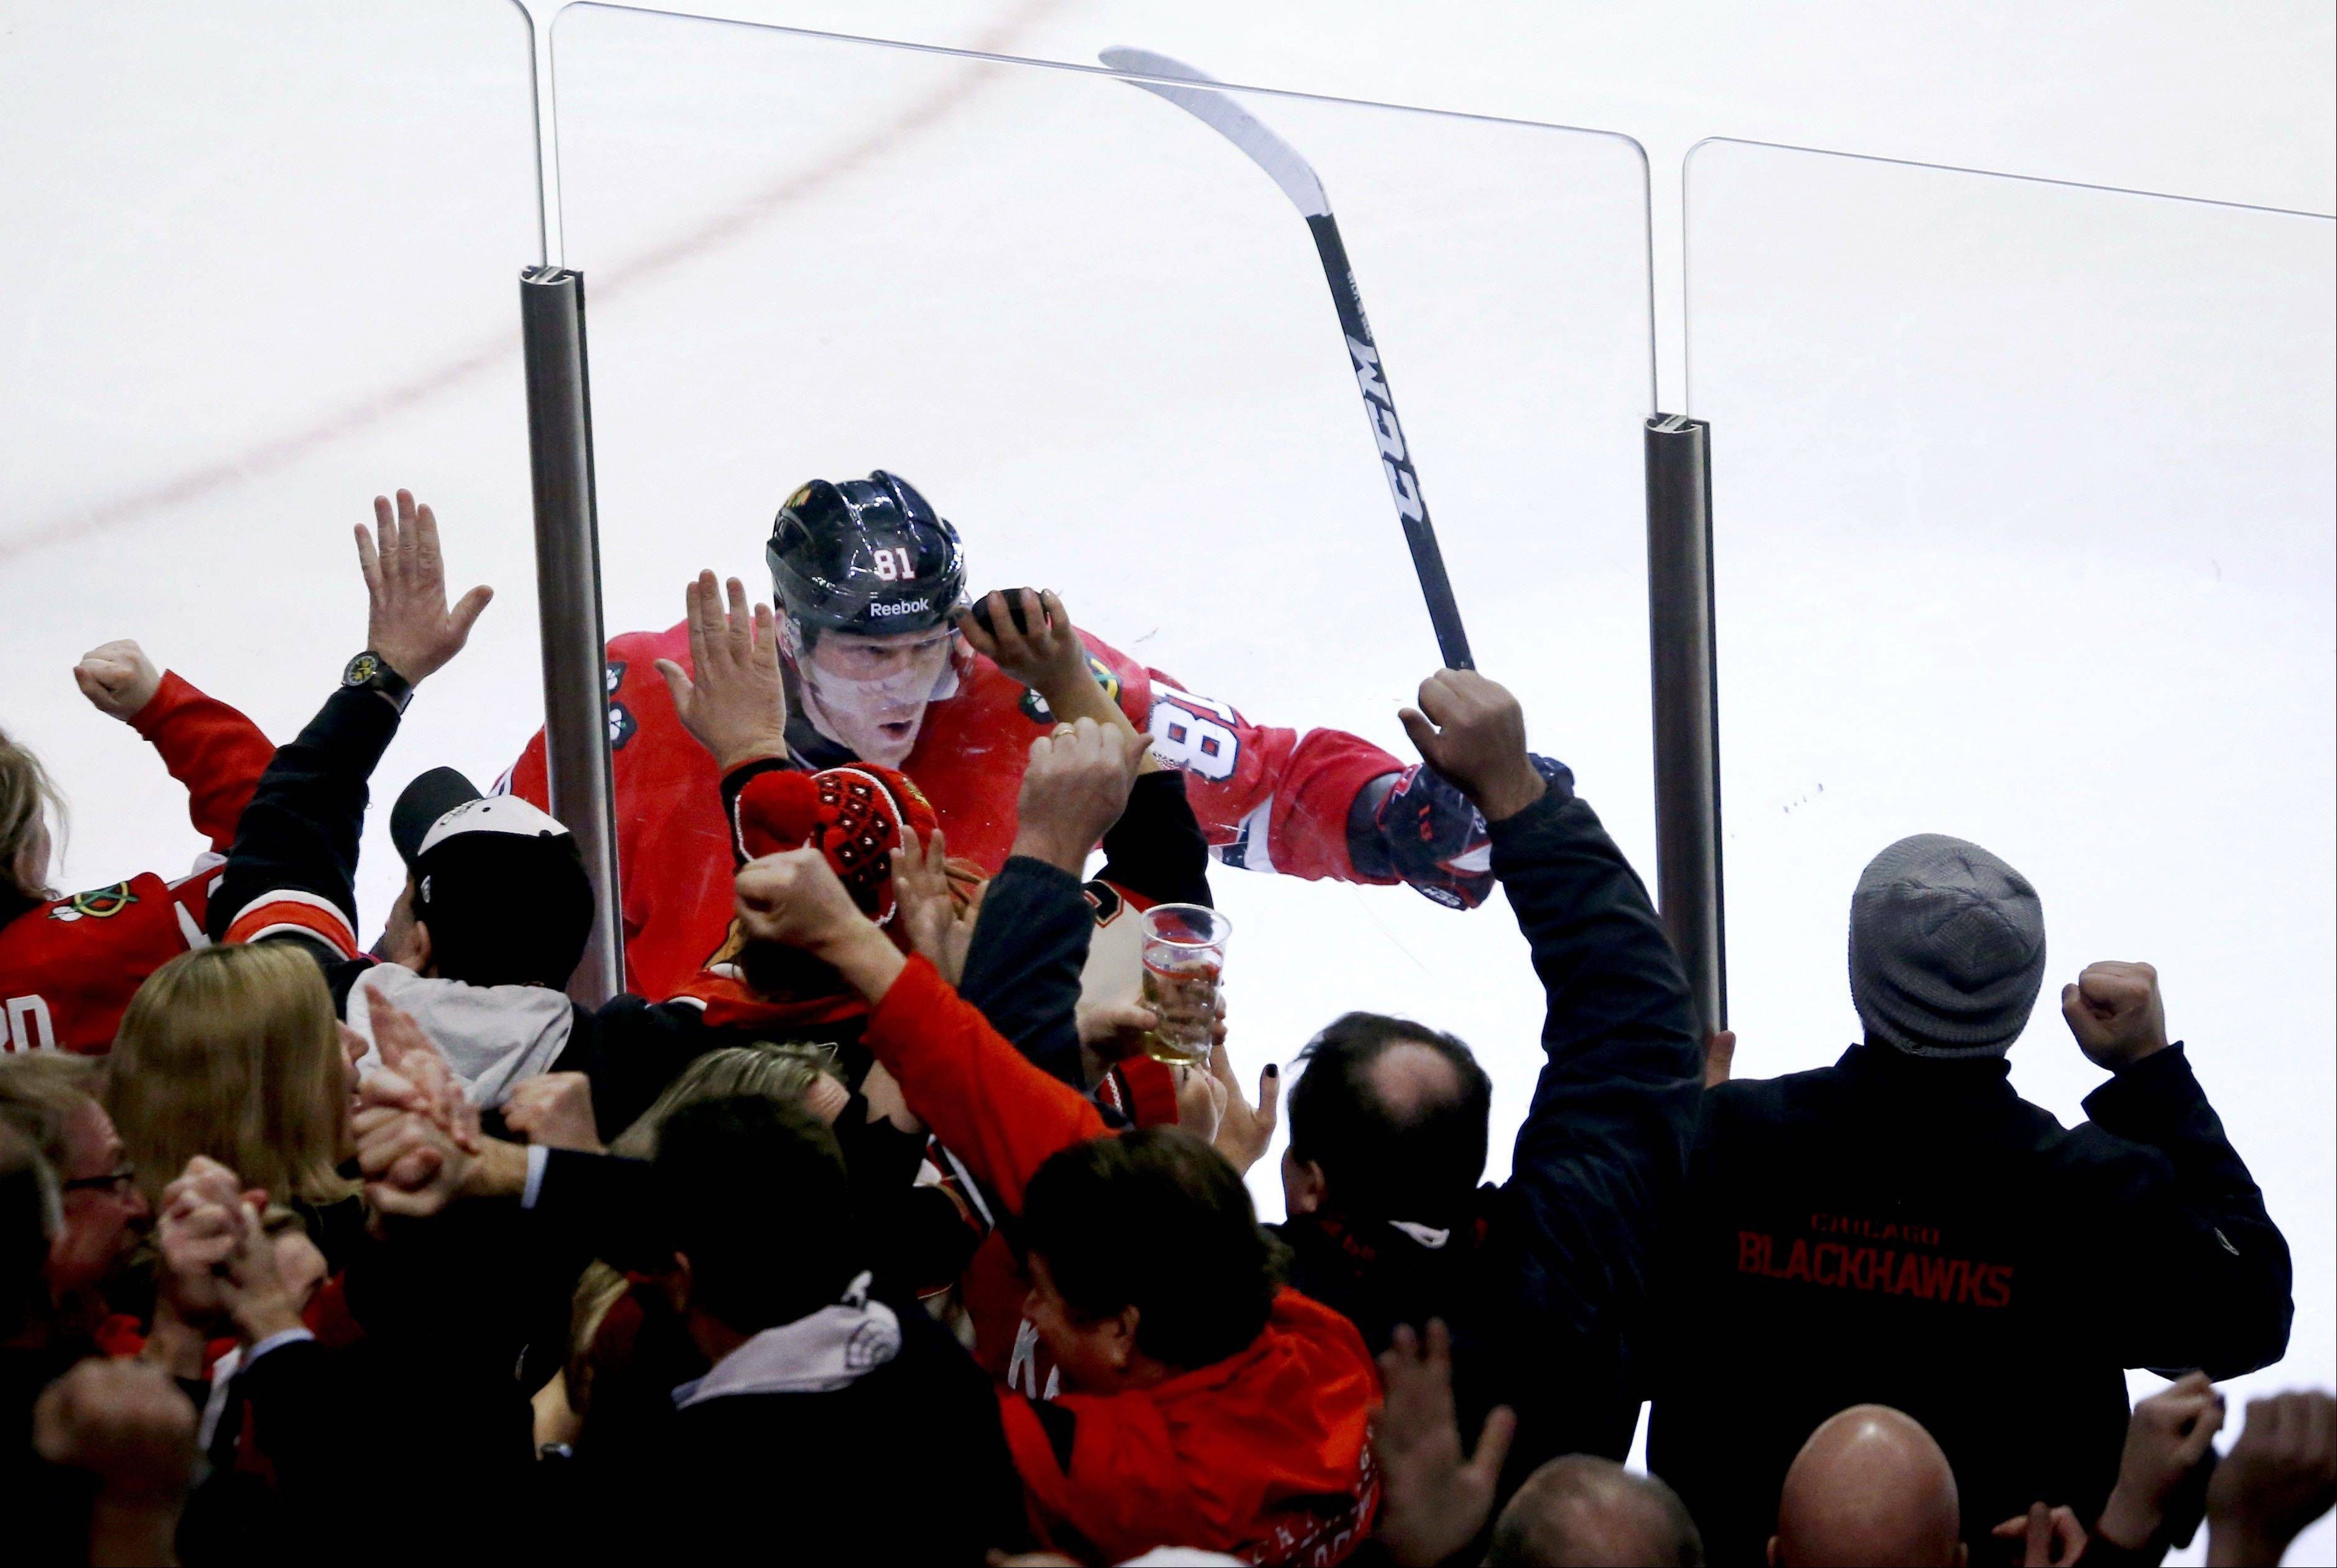 Chicago Blackhawks right wing Marian Hossa celebrates along the boards with fans after scoring the winning goal.